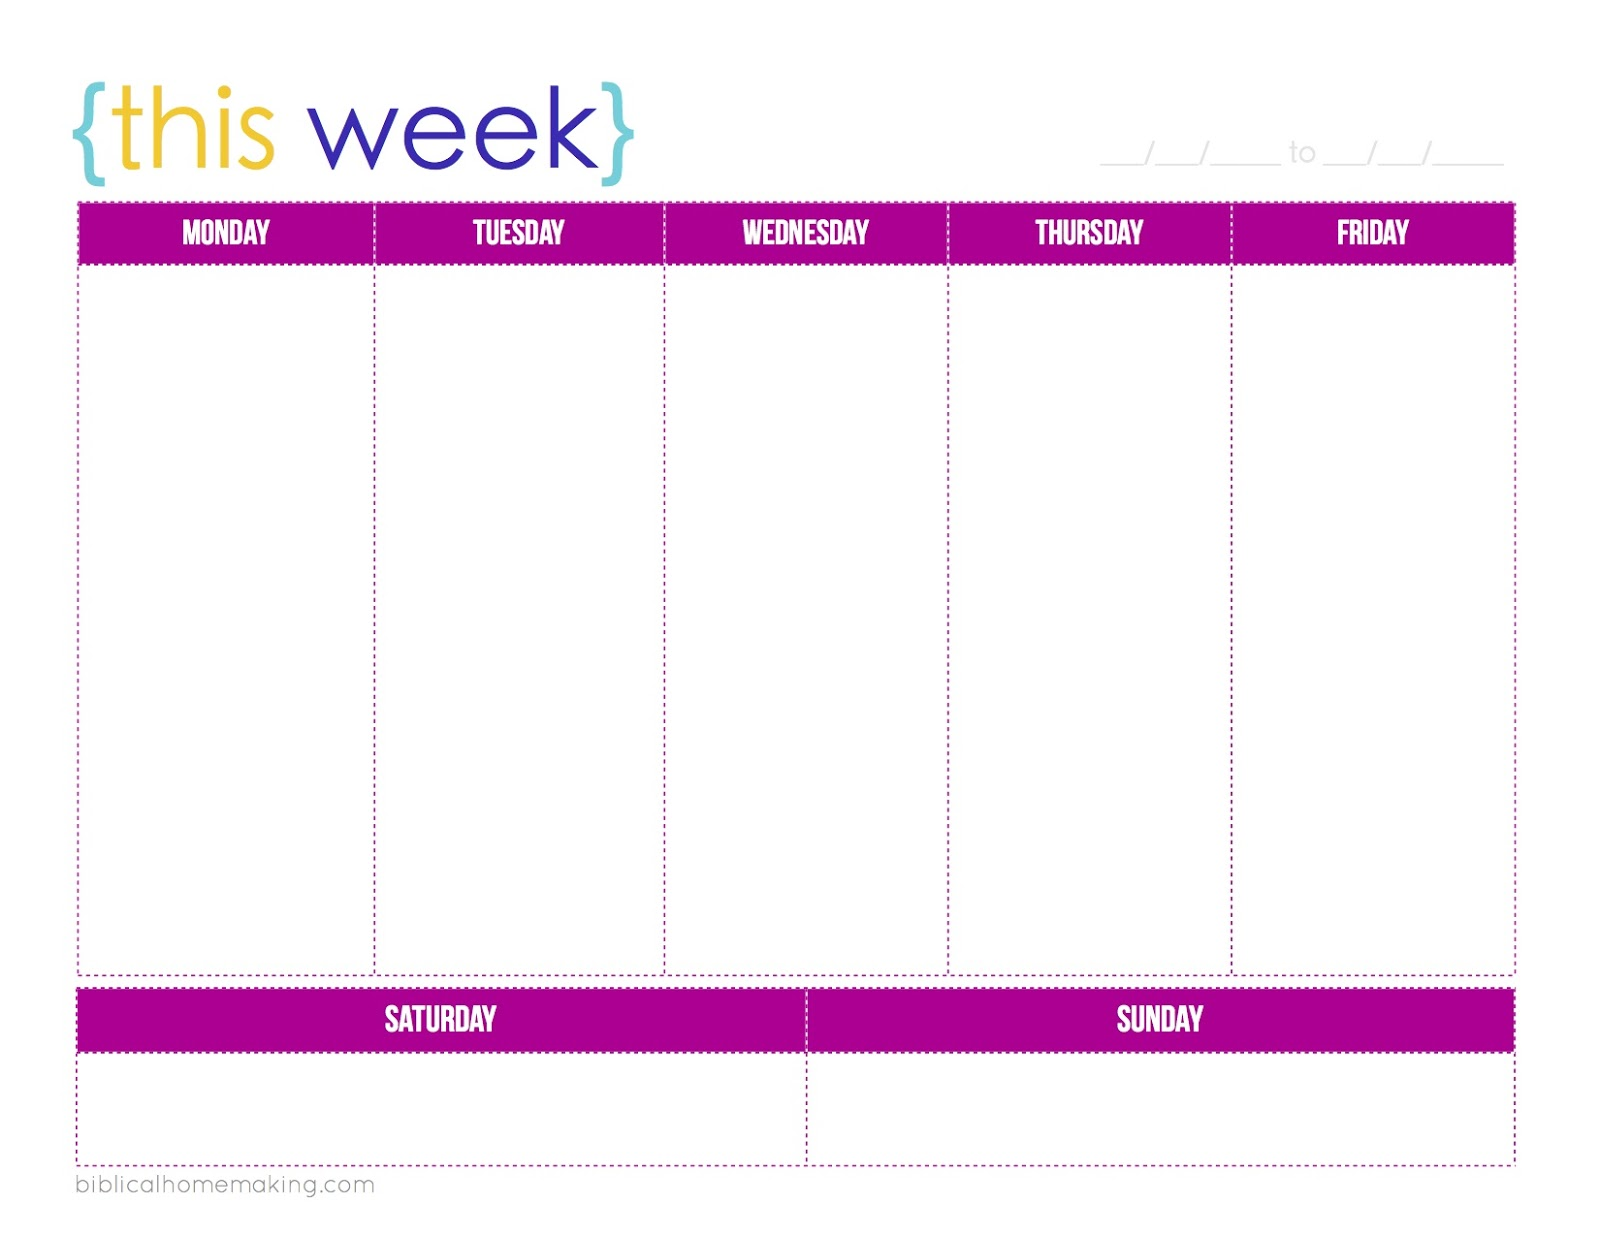 Biblical Homemaking this week a free weekly planner printable – Free Printable Weekly Planner